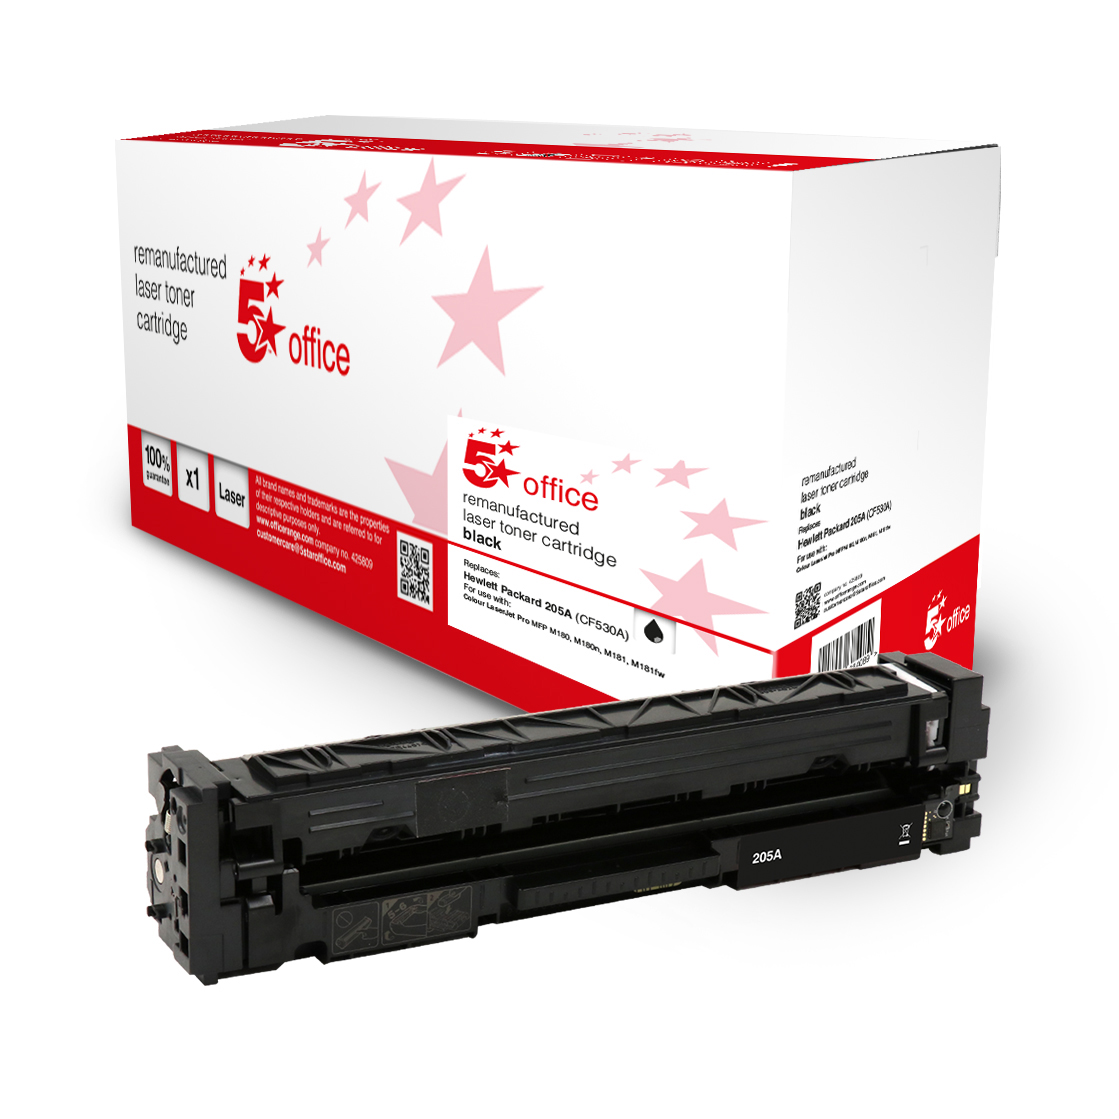 5 Star Office Remanufactured Toner Cartridge Page Life Black 1100pp HP 205A CF530A Alternative